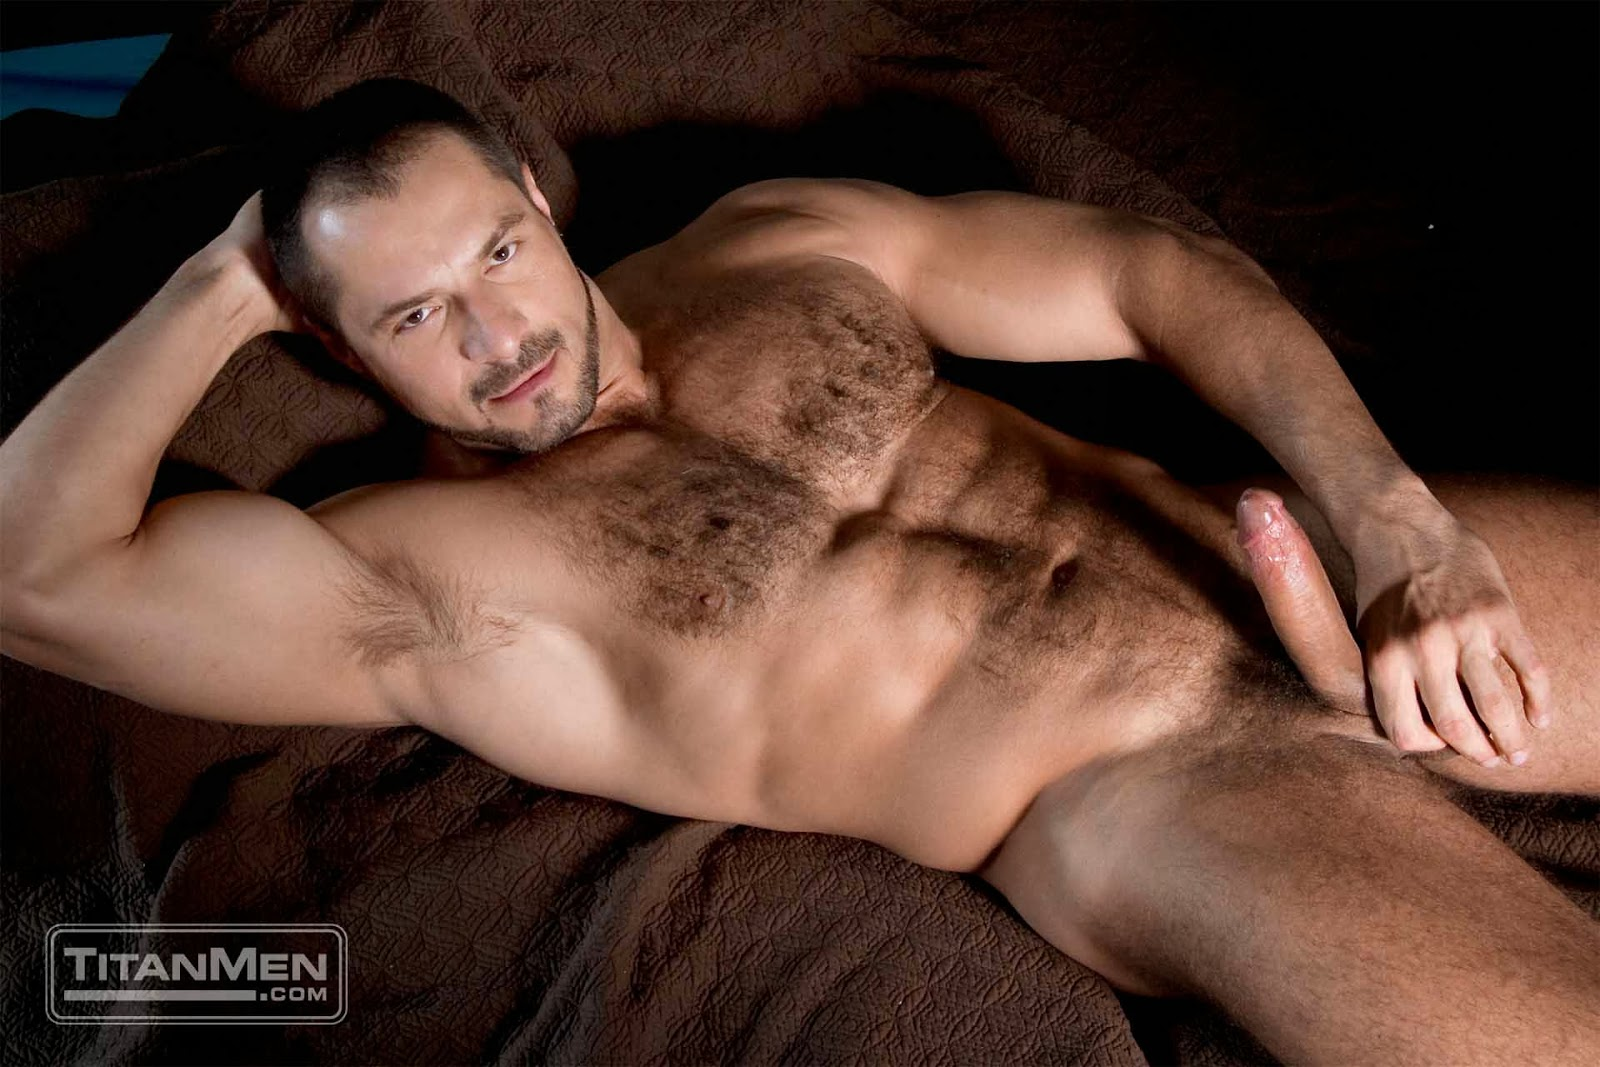 Ace Malone - Nude Hairy Men Photos and Gay Daddy